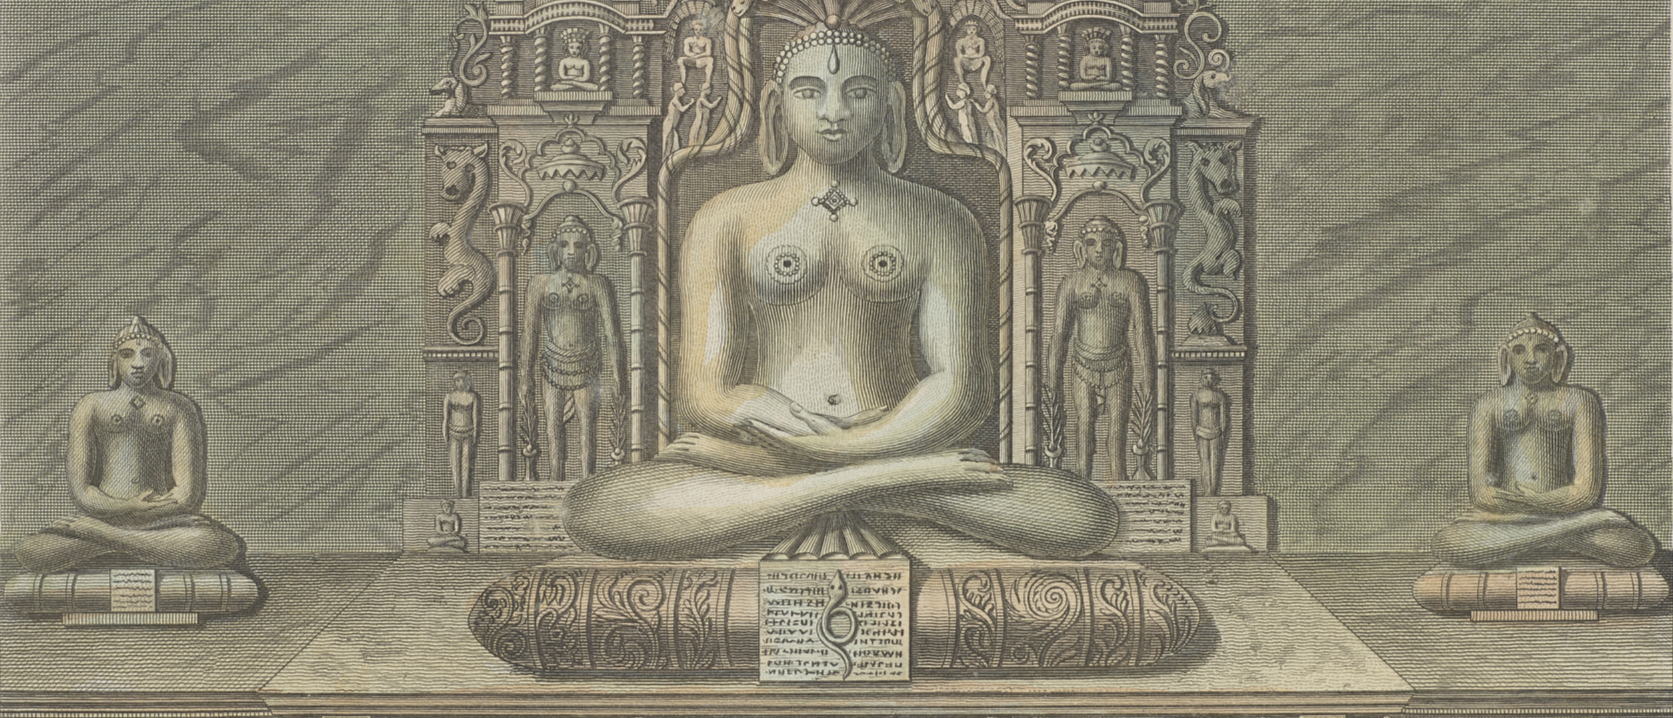 Print depicting a seated Hindu sculpture